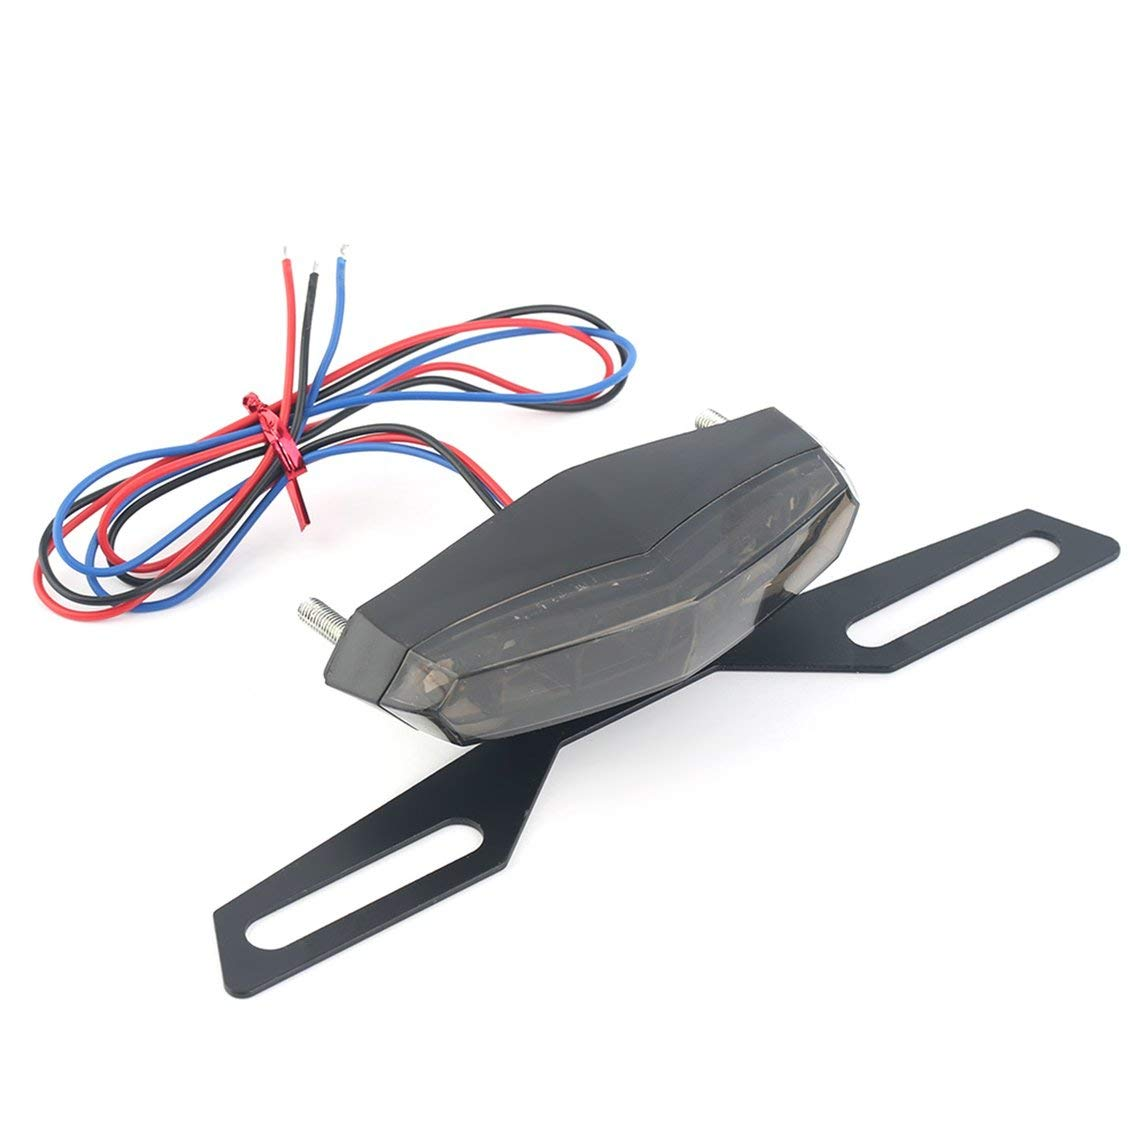 Zinniaya ABS and Metal Black Long life Low Consumption Professional LED Motorcycle Rear Tail Light Brake Stop Light